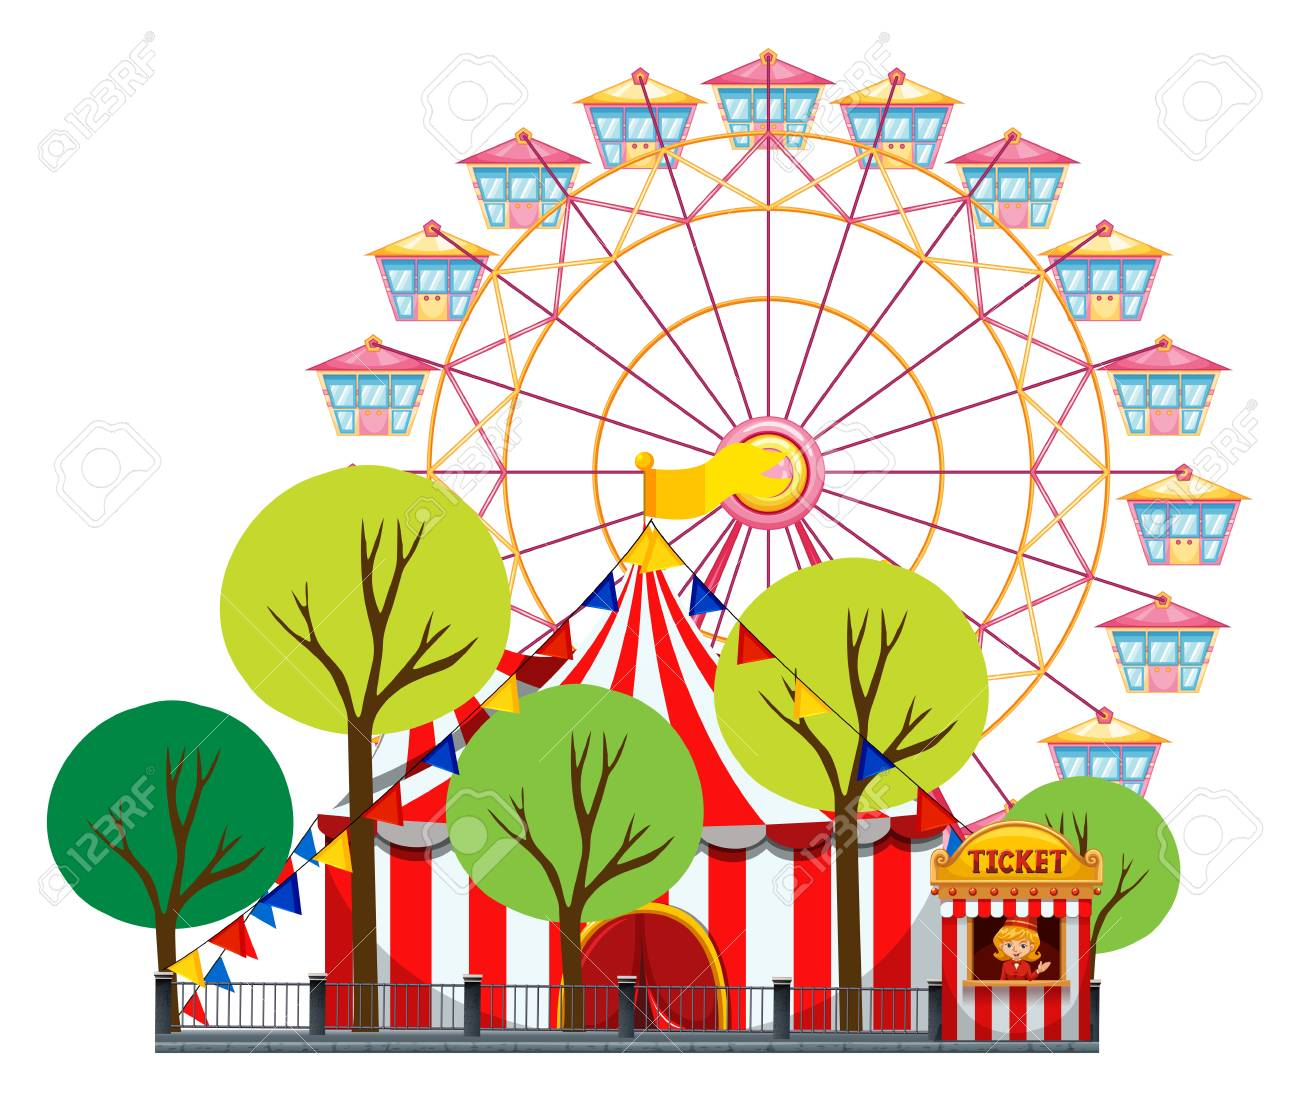 Circus scene with tent and ferris wheel illustration.